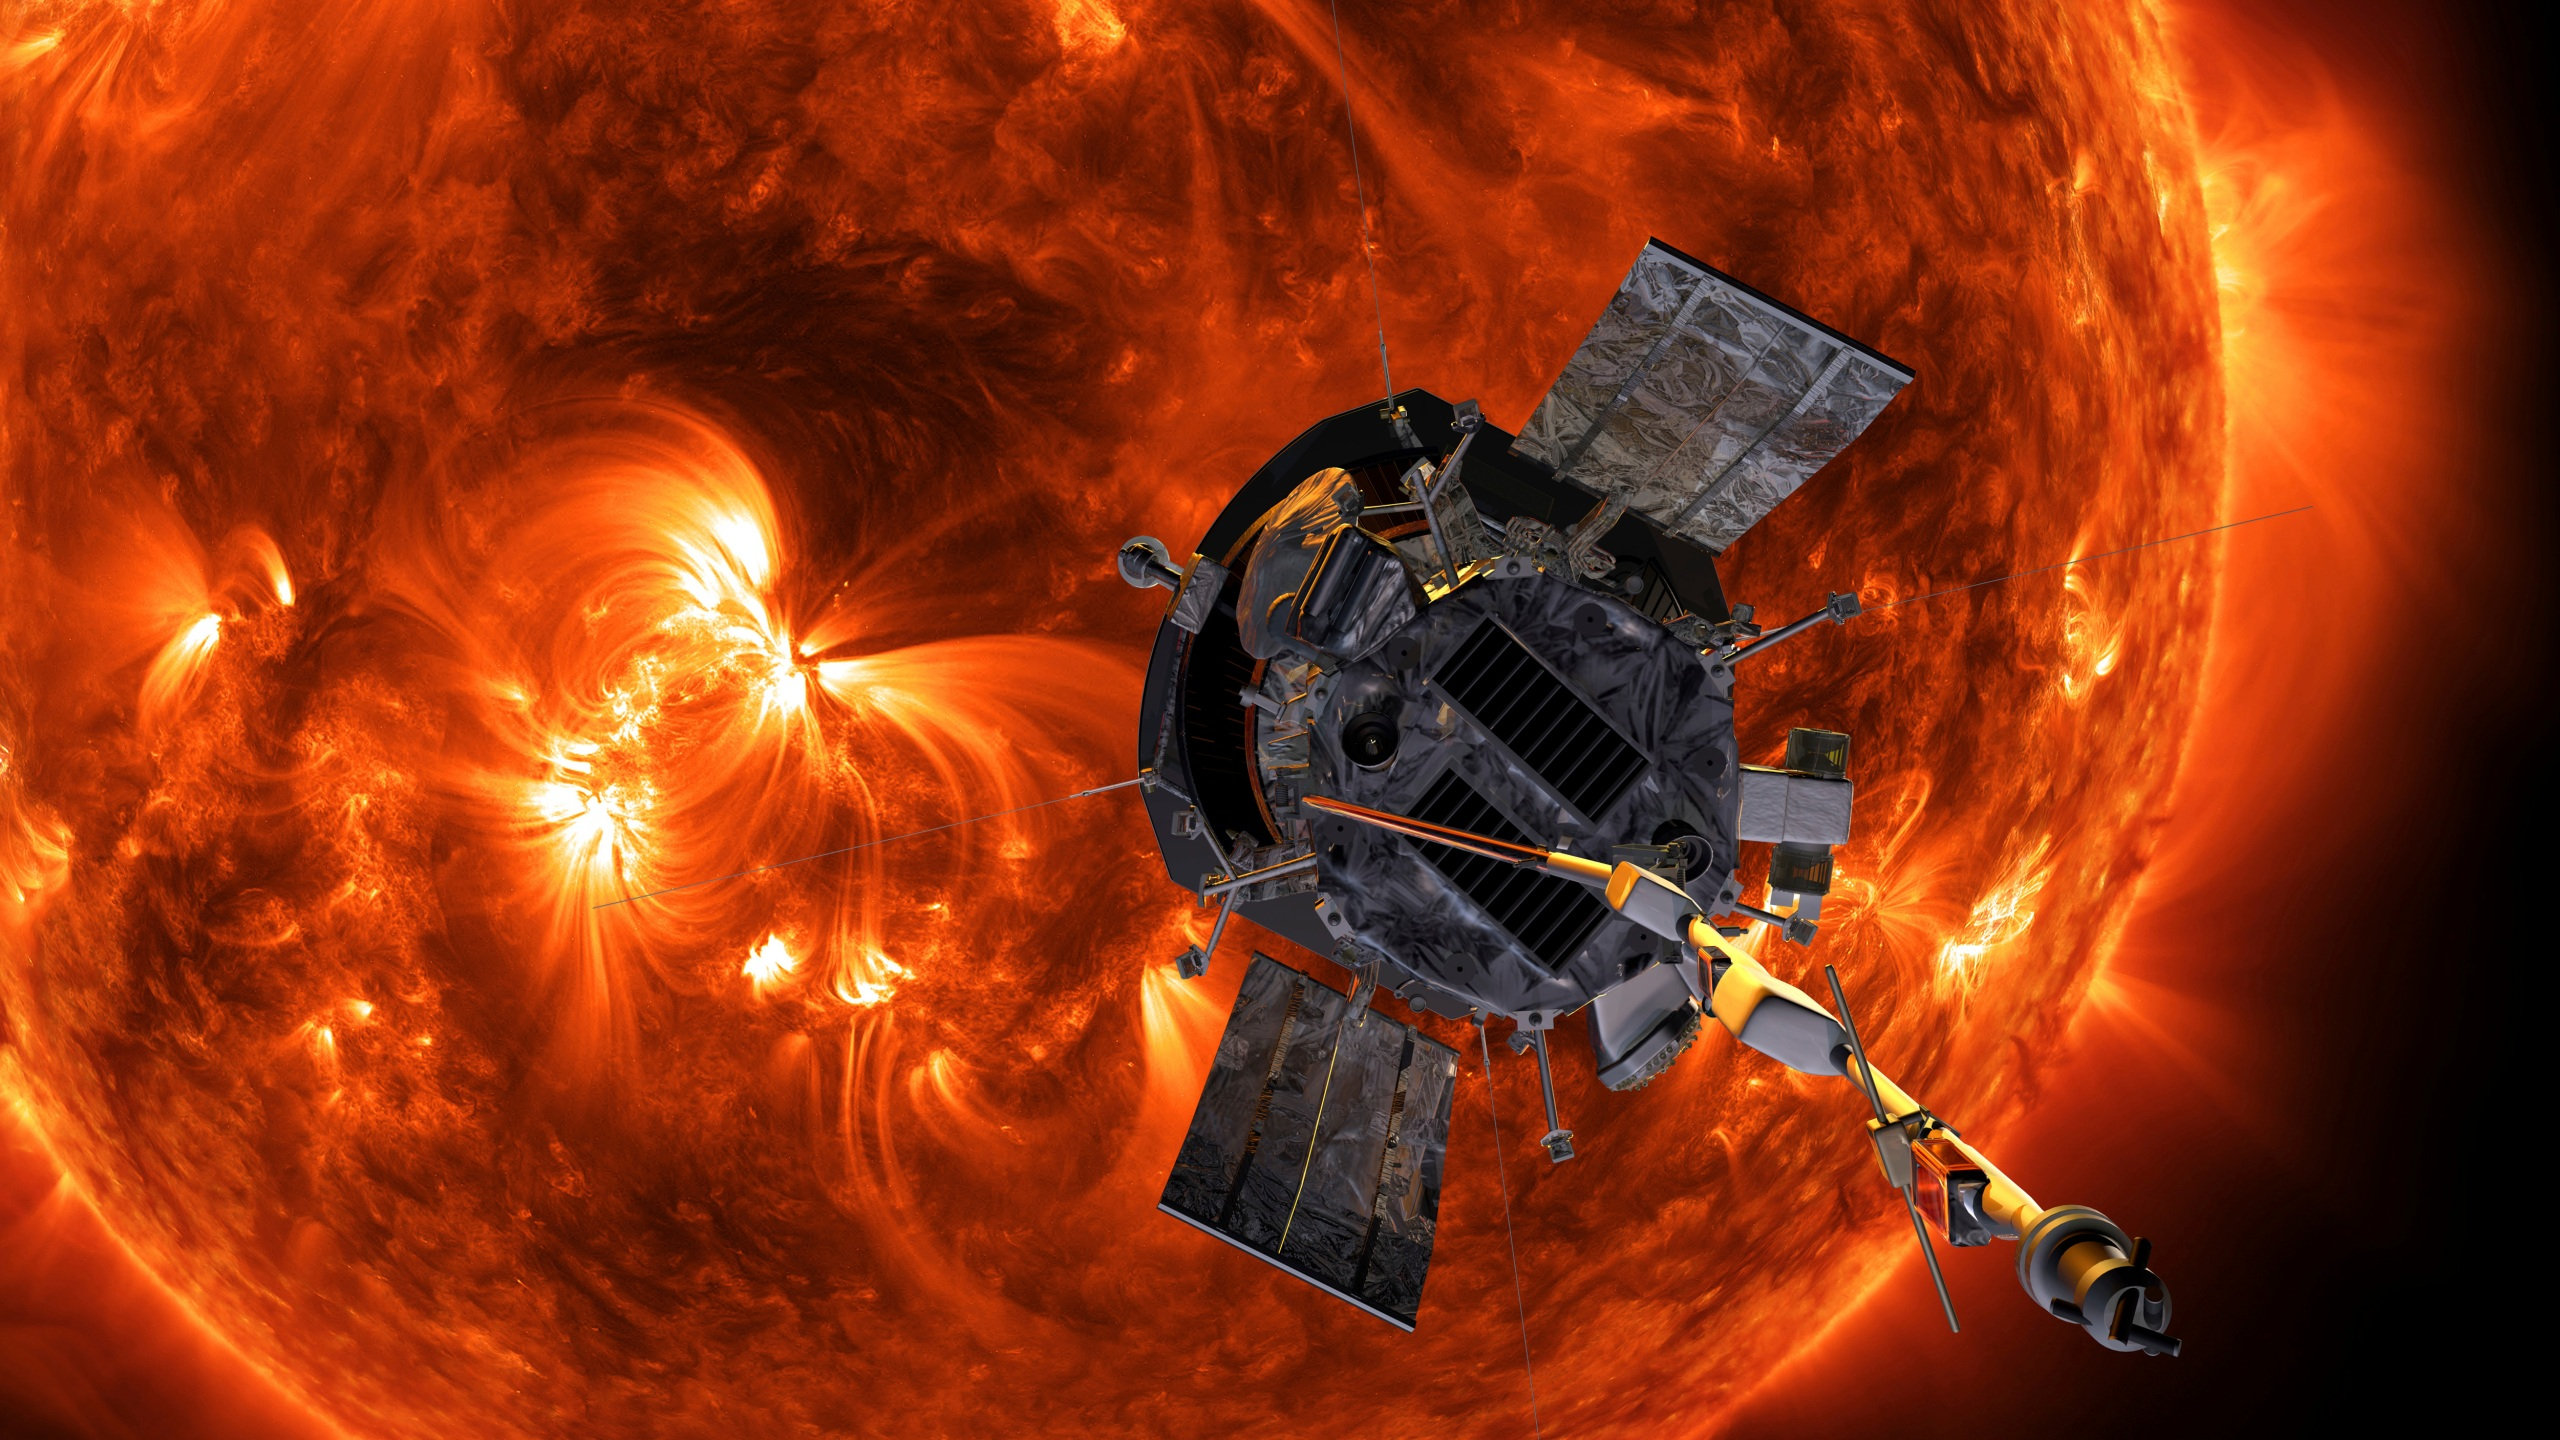 Space_Close_To_The_Sun_50041-159532.jpg66952560